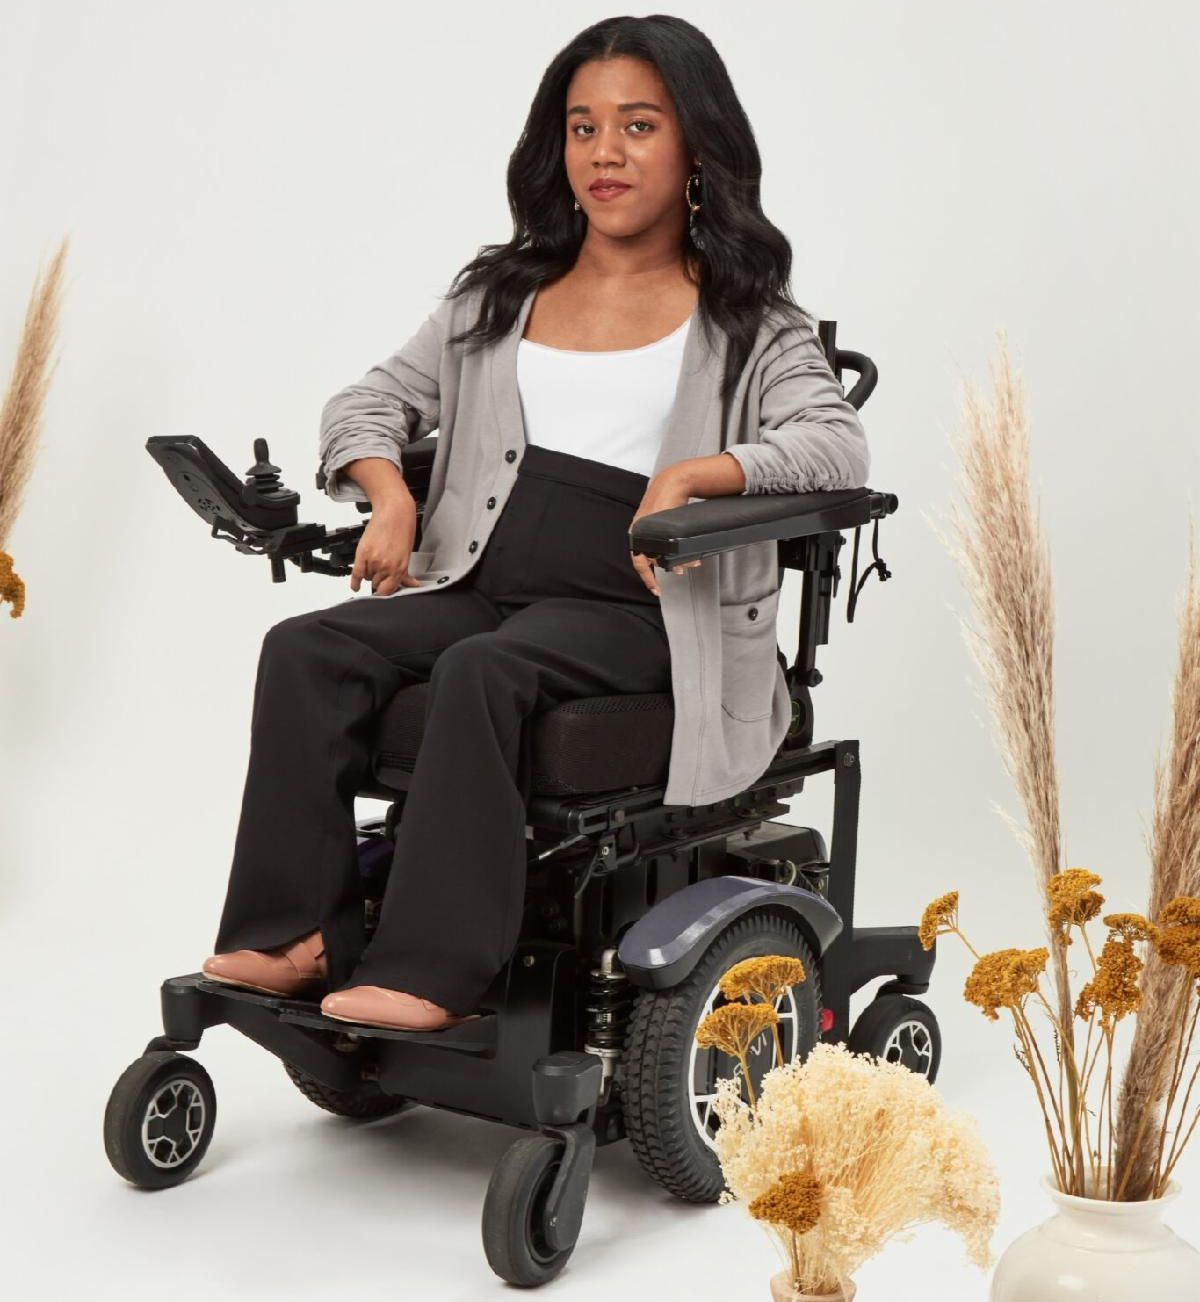 Woman with dark hair with black pants, white top, and grey sweater in a power wheelchair,